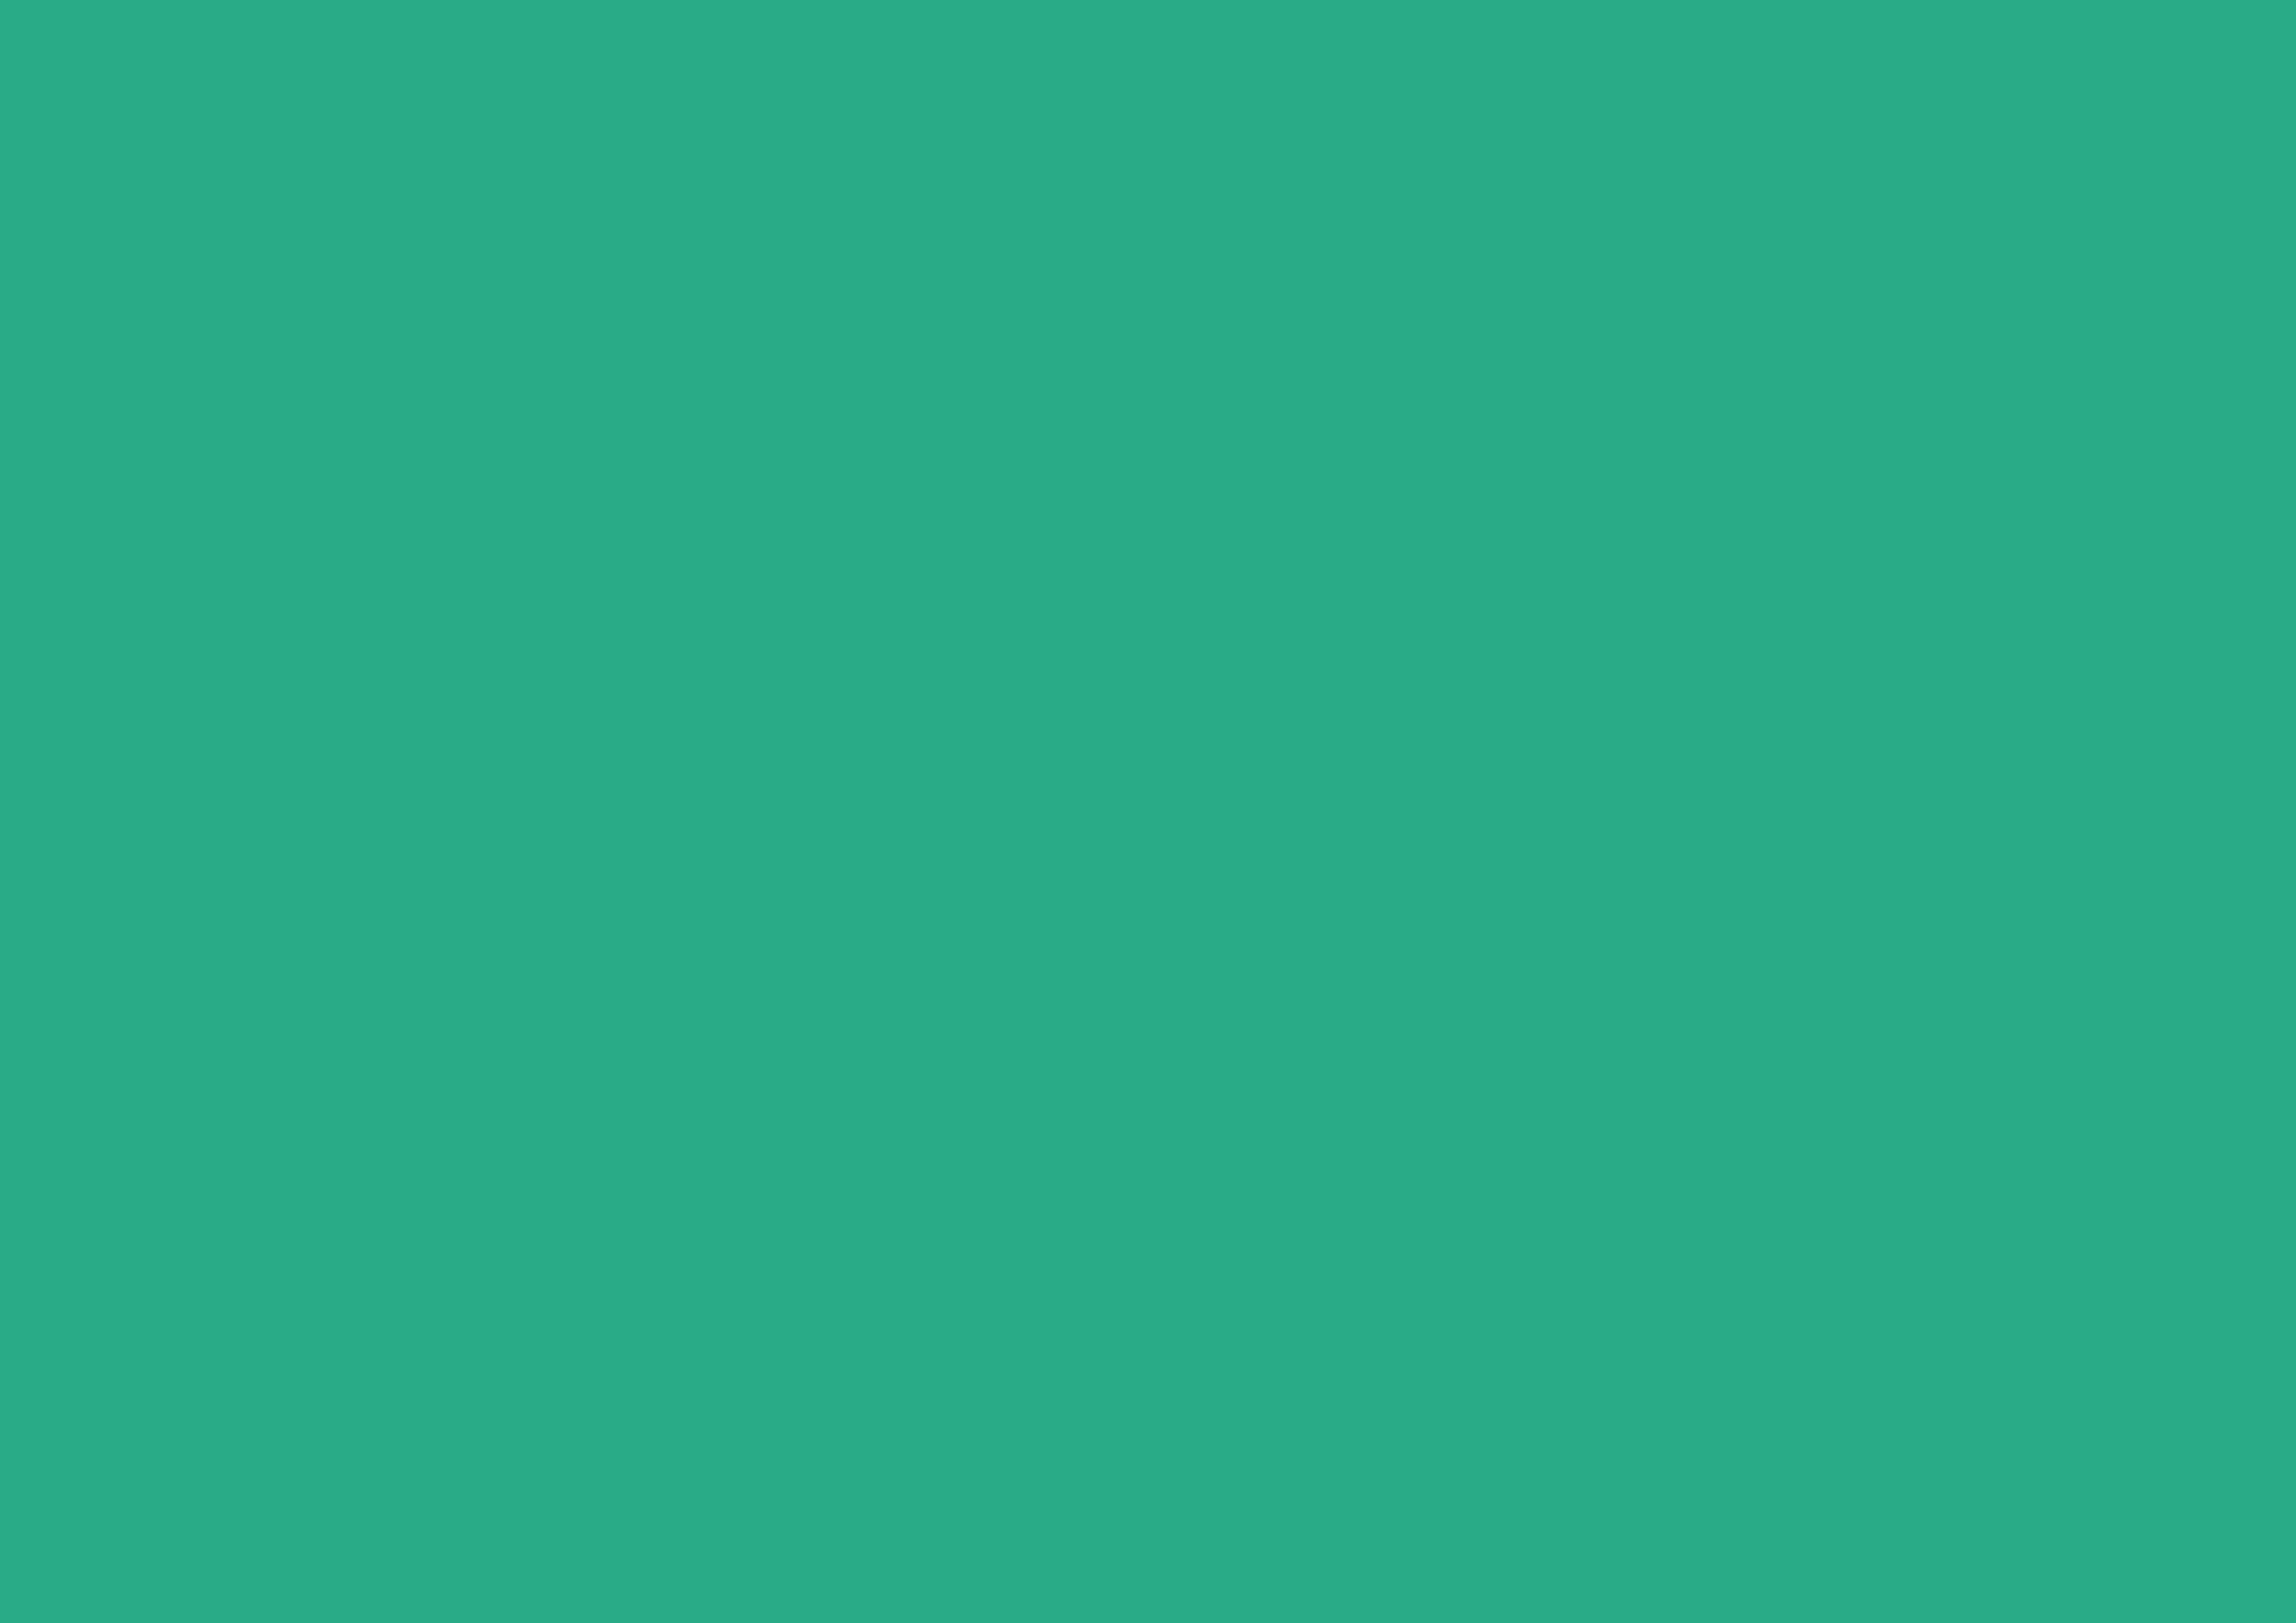 3508x2480 Jungle Green Solid Color Background